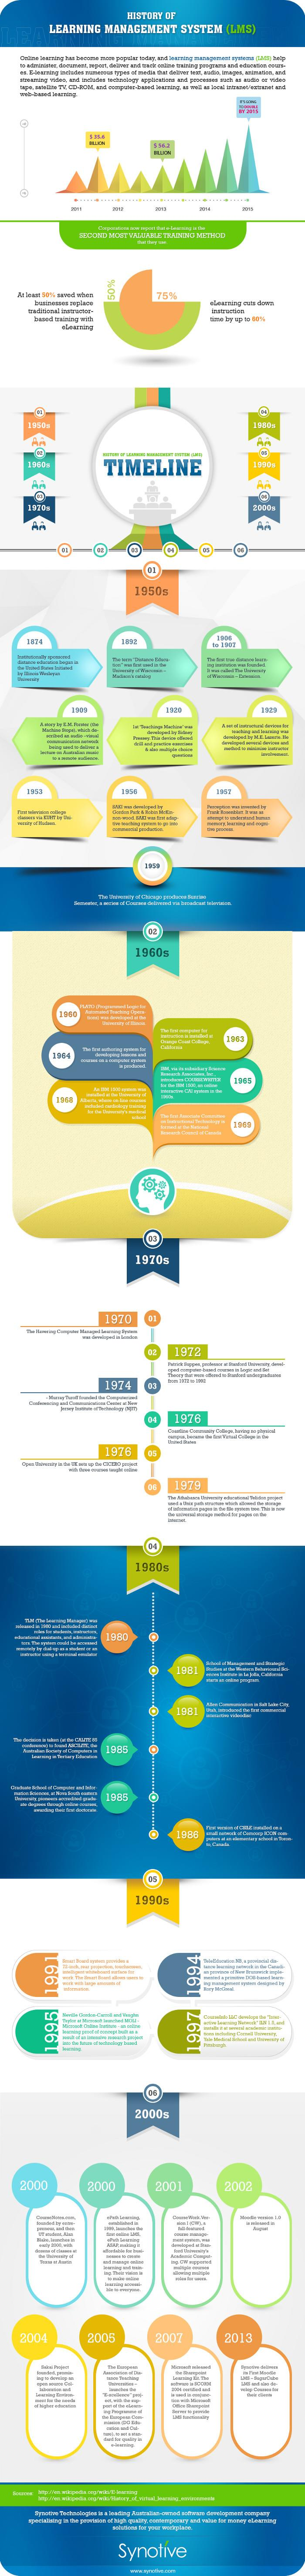 History of Learning Management System (LMS)